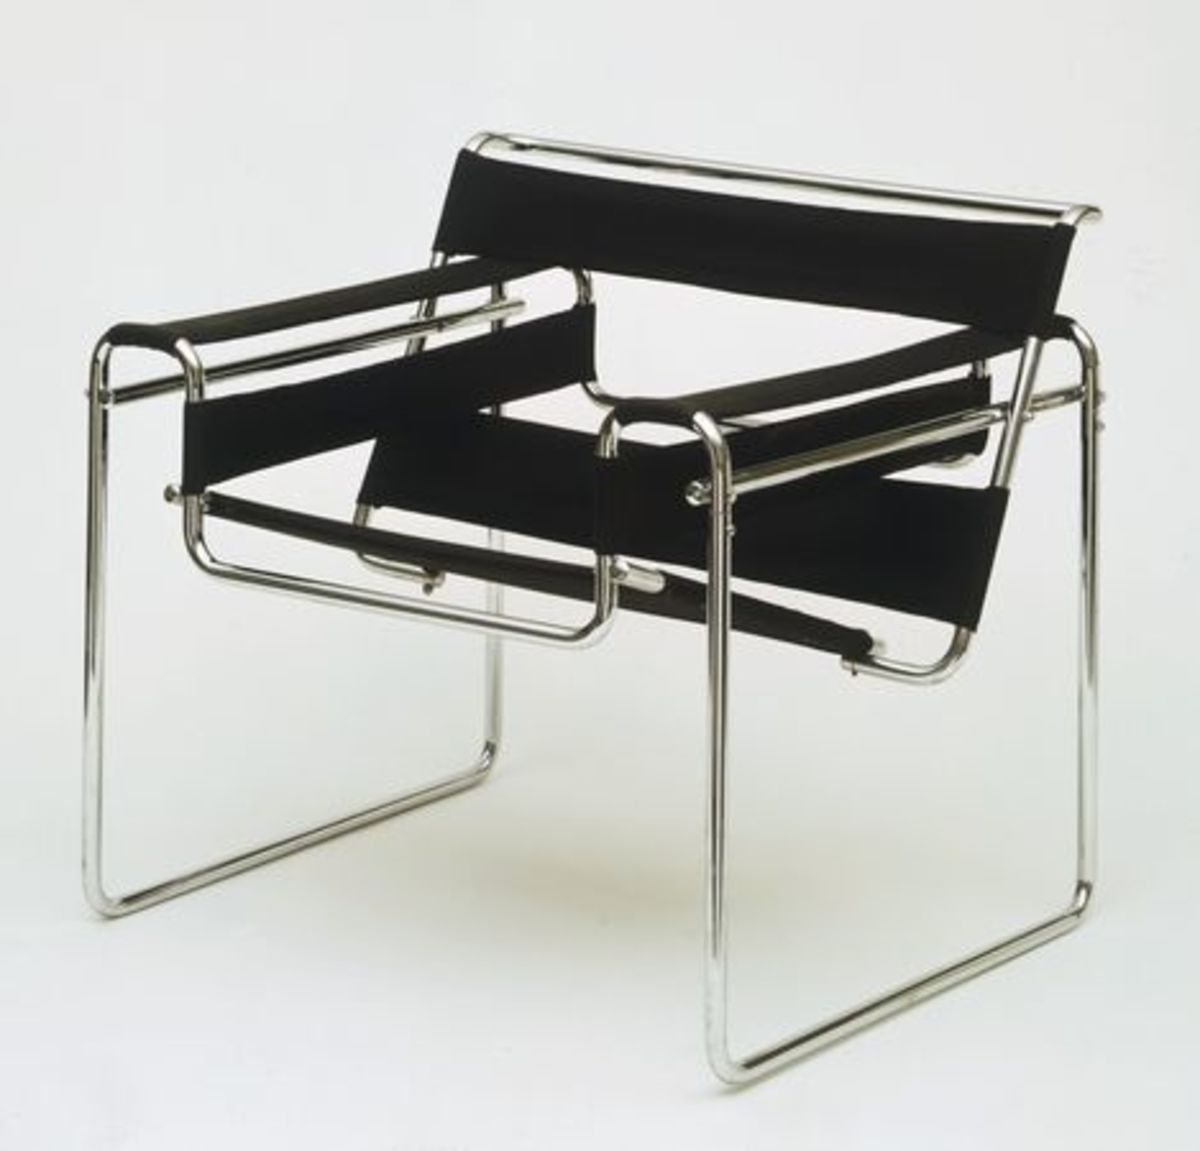 Bauhaus and Its Influence on Modern Design